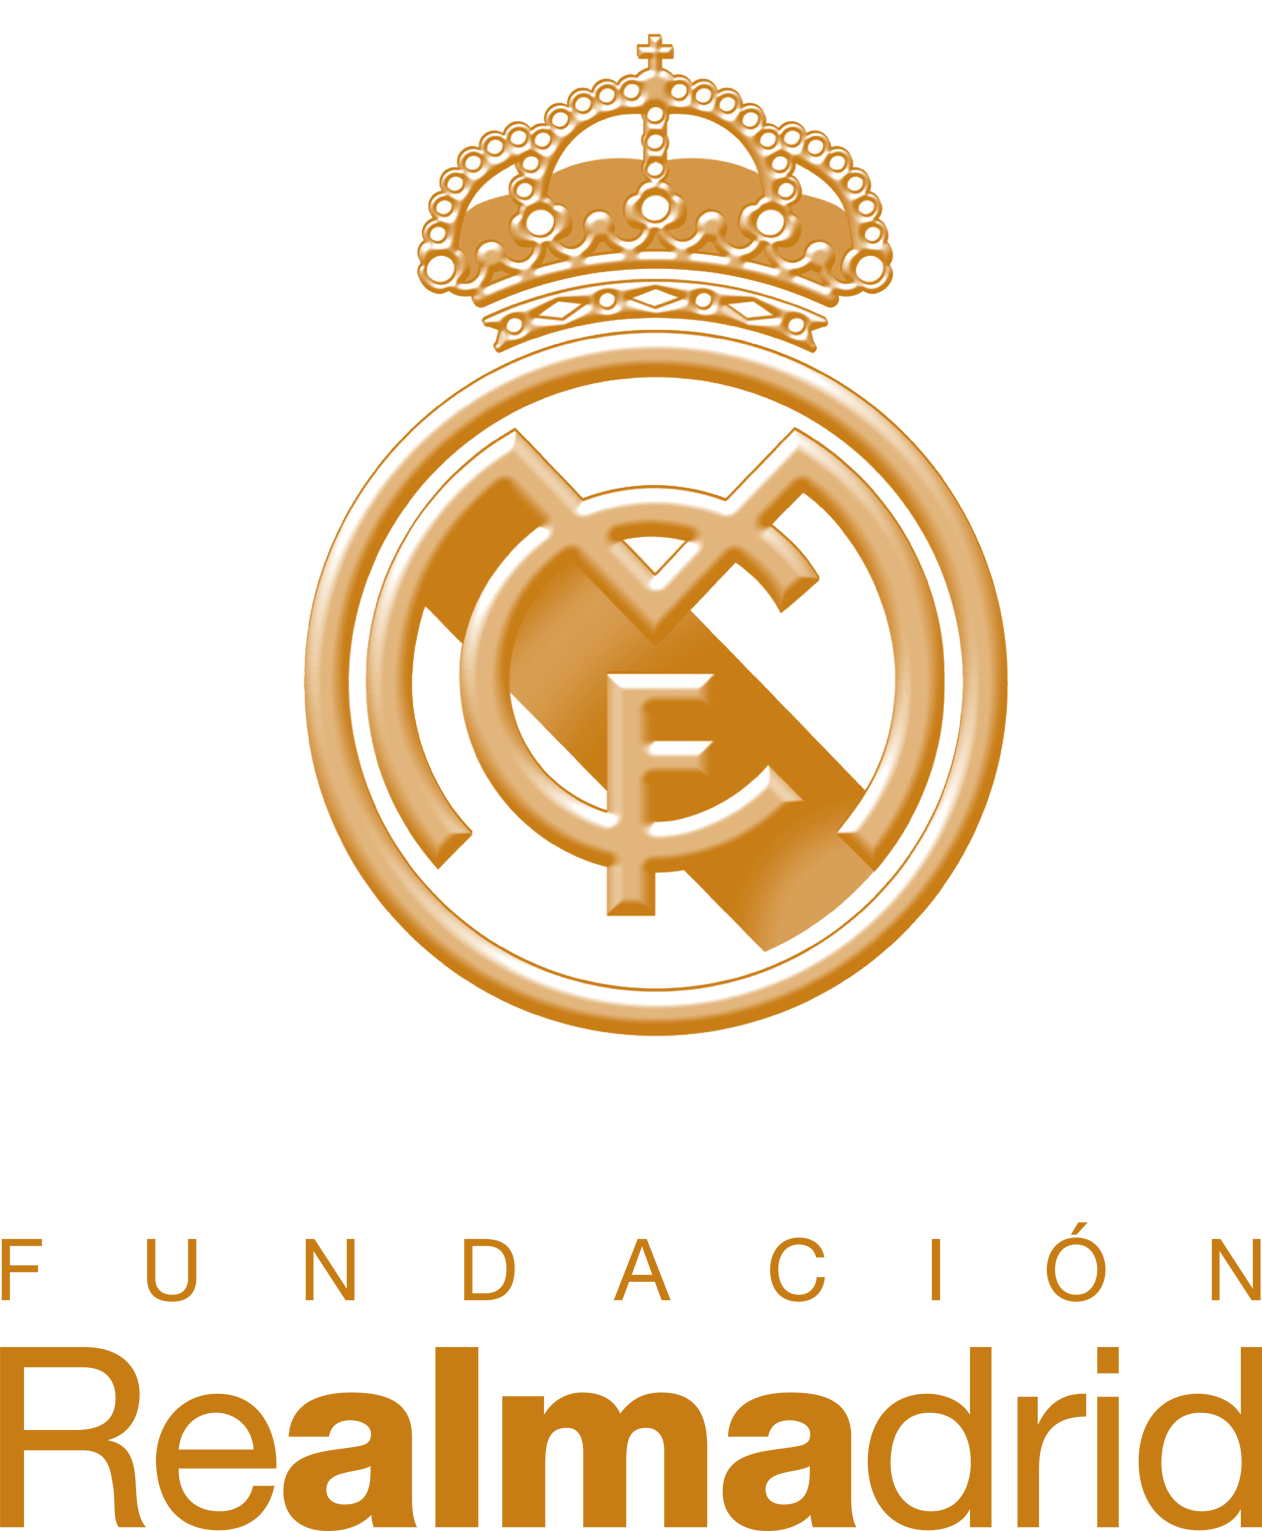 Get Real Madrid Logo Png Pictures Image 1262x1531 Wallpaper Teahub Io